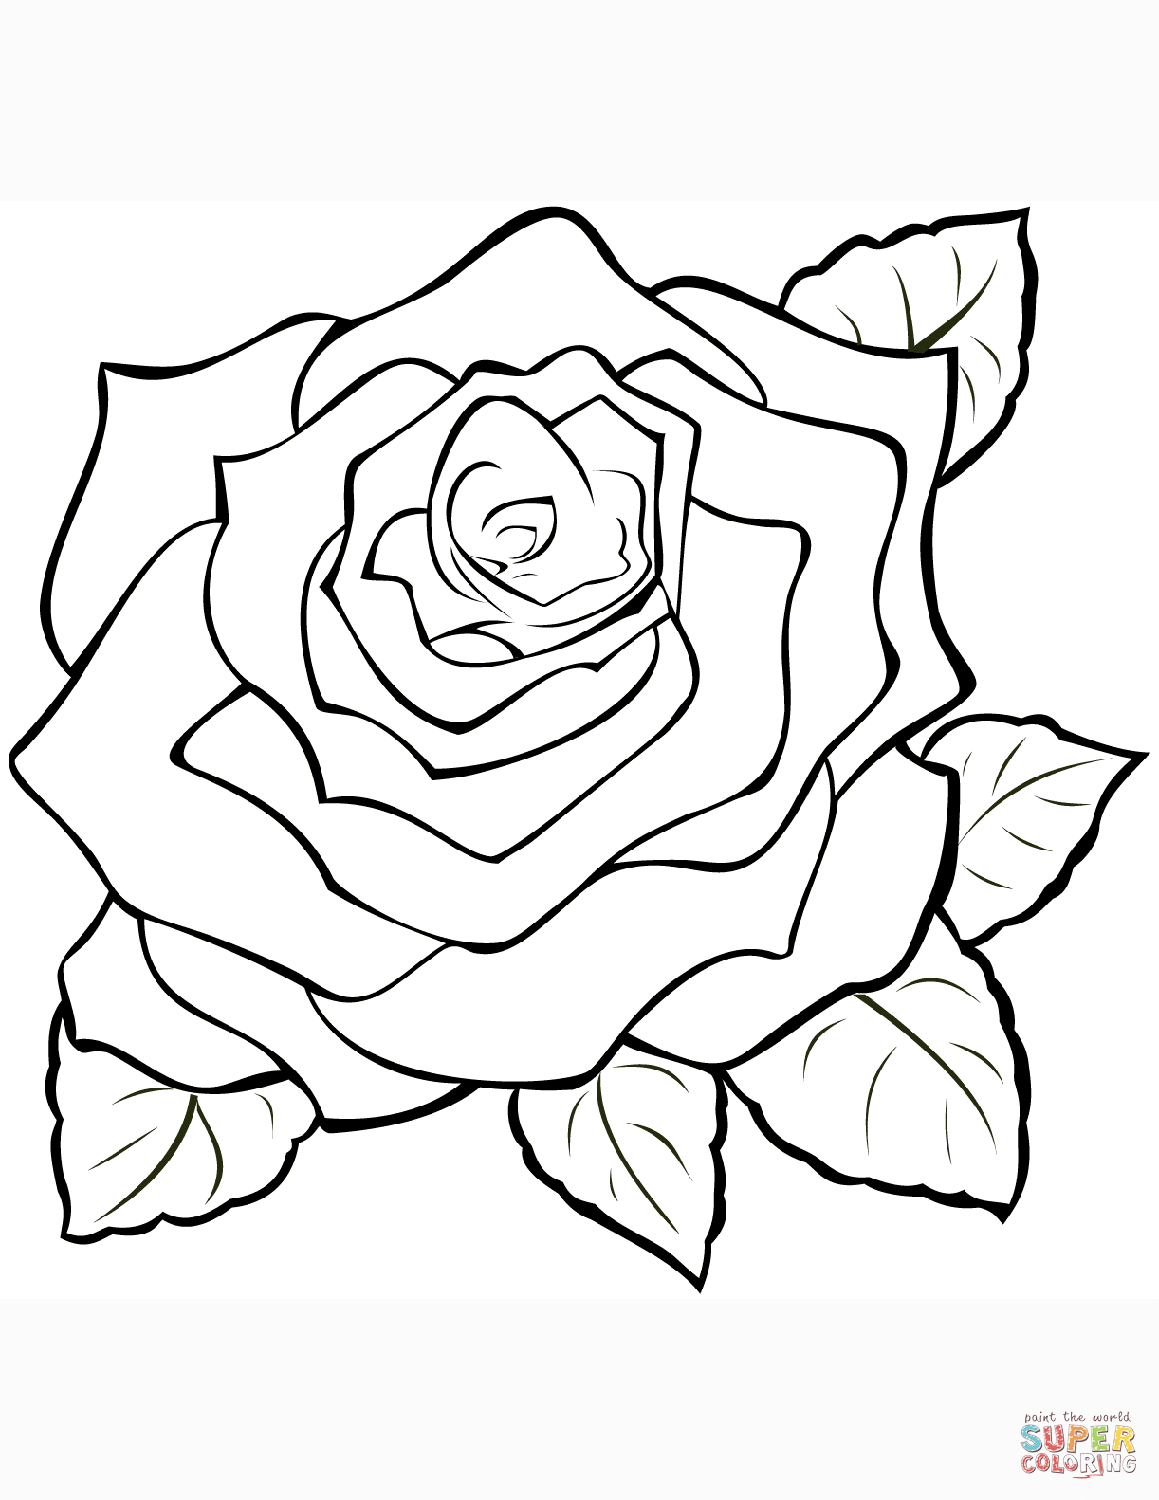 coloring page rose rose coloring pages with subtle shapes and forms can be coloring page rose